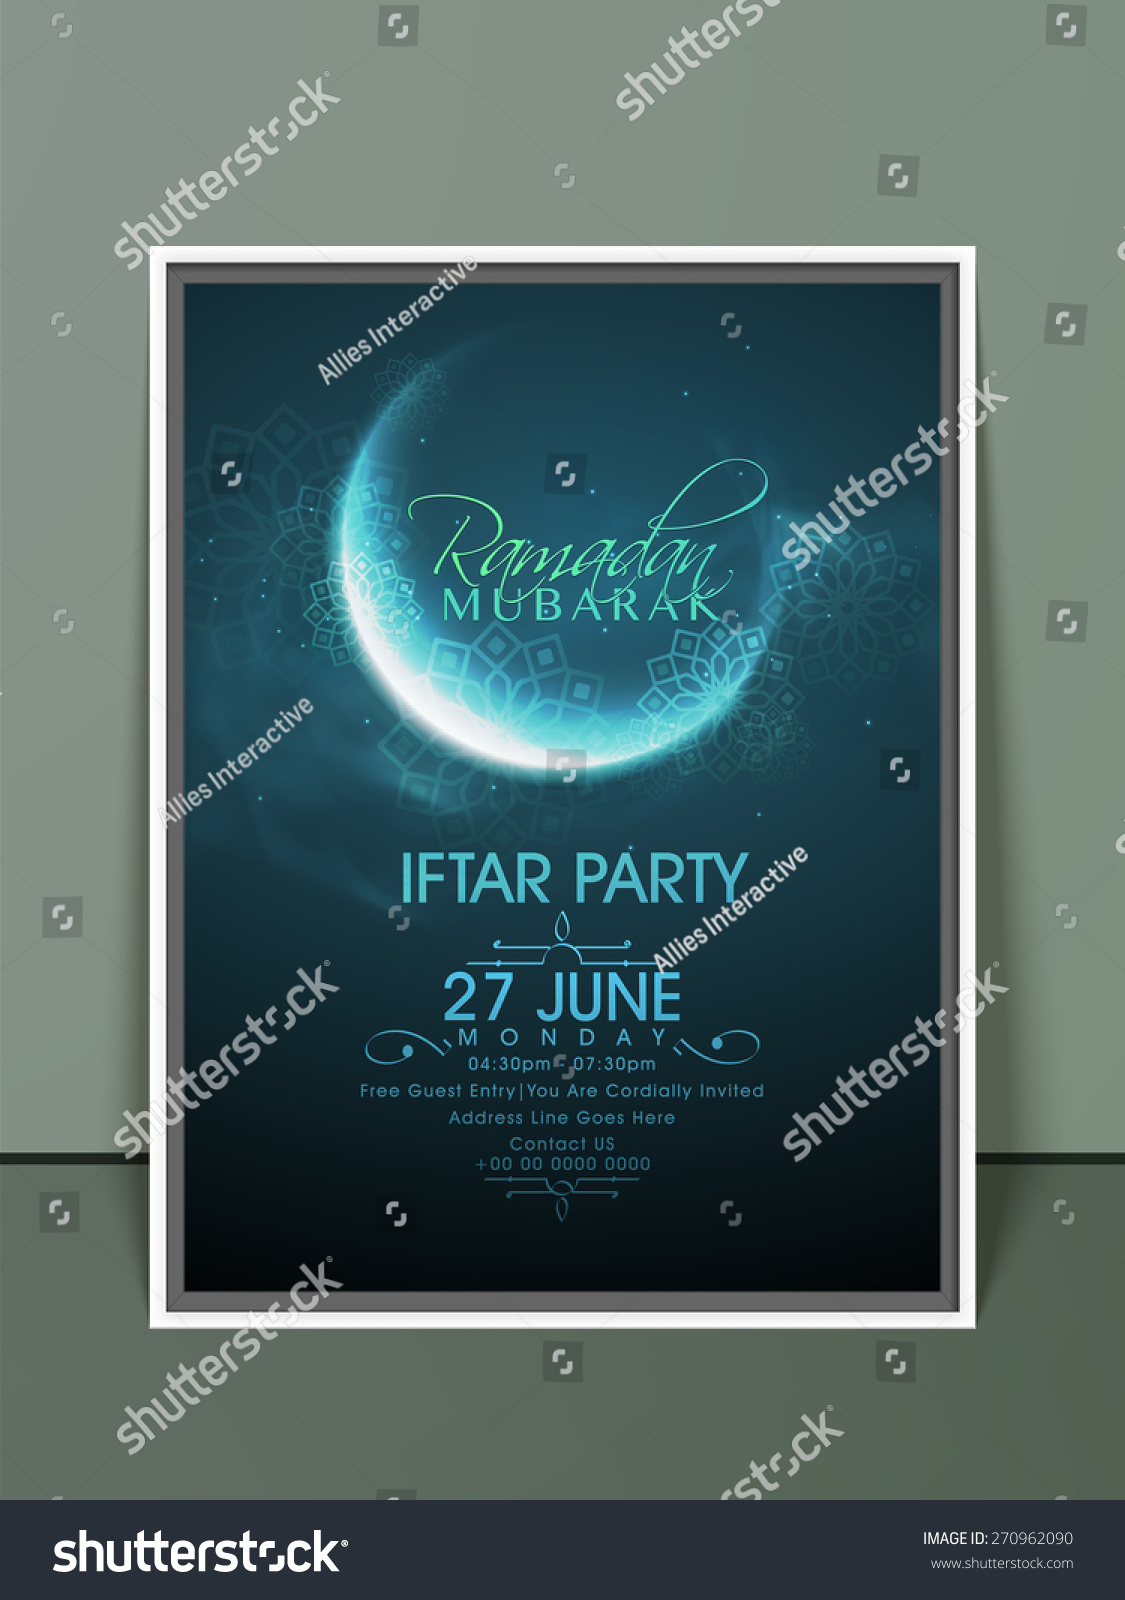 Ramadan kareem iftar party celebration invitation stock vector ramadan kareem iftar party celebration invitation card with crescent moon in blue night and floral stopboris Gallery